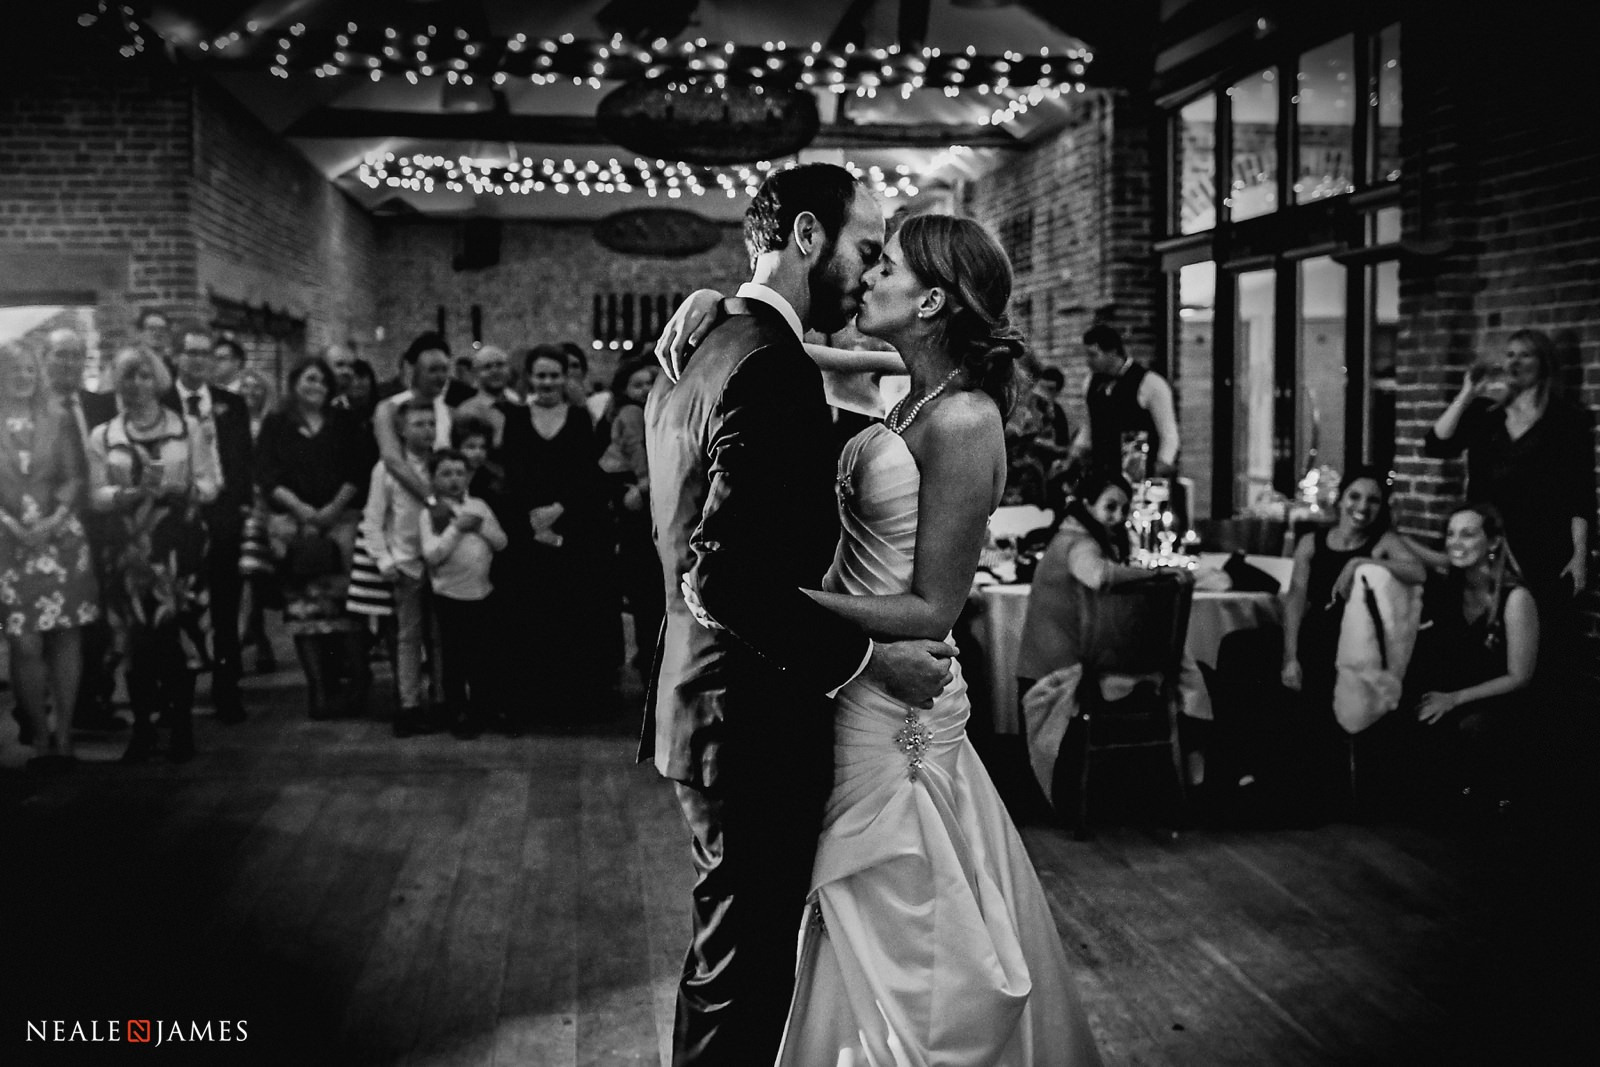 The bride and groom take to the dancefloor for their first dance at Wasing Park